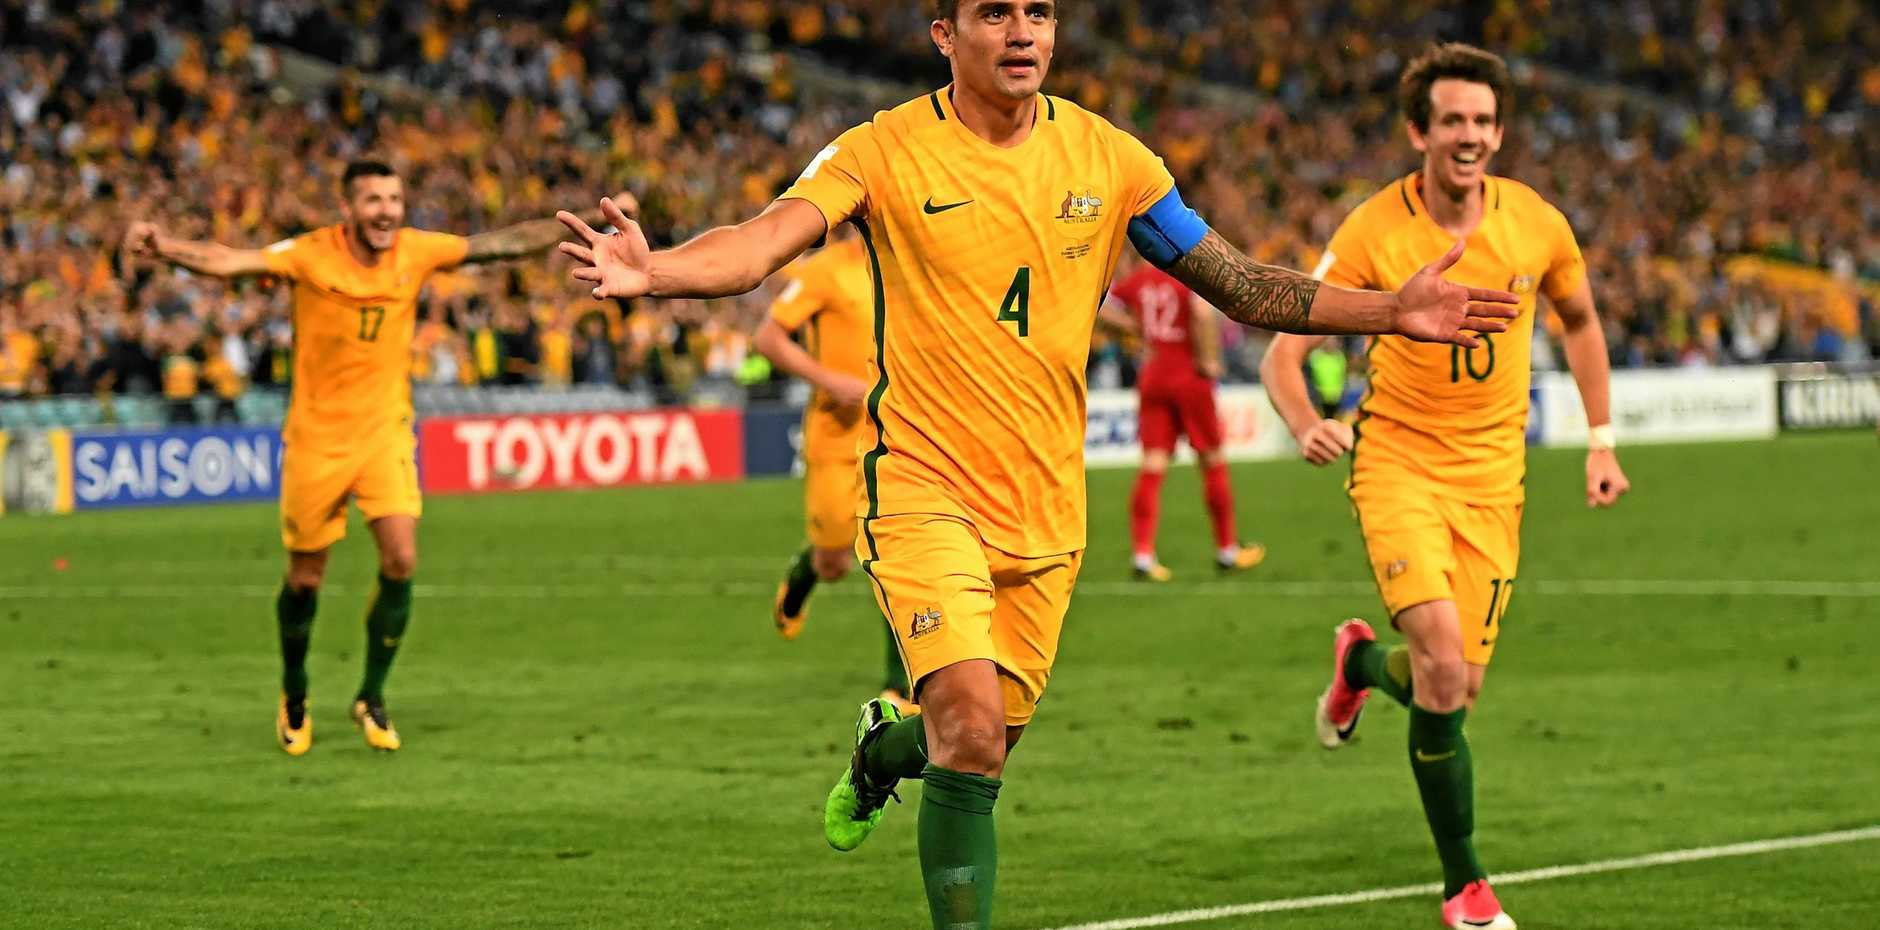 COMETH THE HOUR: Australia's Tim Cahill celebrates after scoring in extra time during the 2018 World Cup qualifying football match between Australia and Syria at Stadium Australia in Sydney, Tuesday, October 10, 2017.